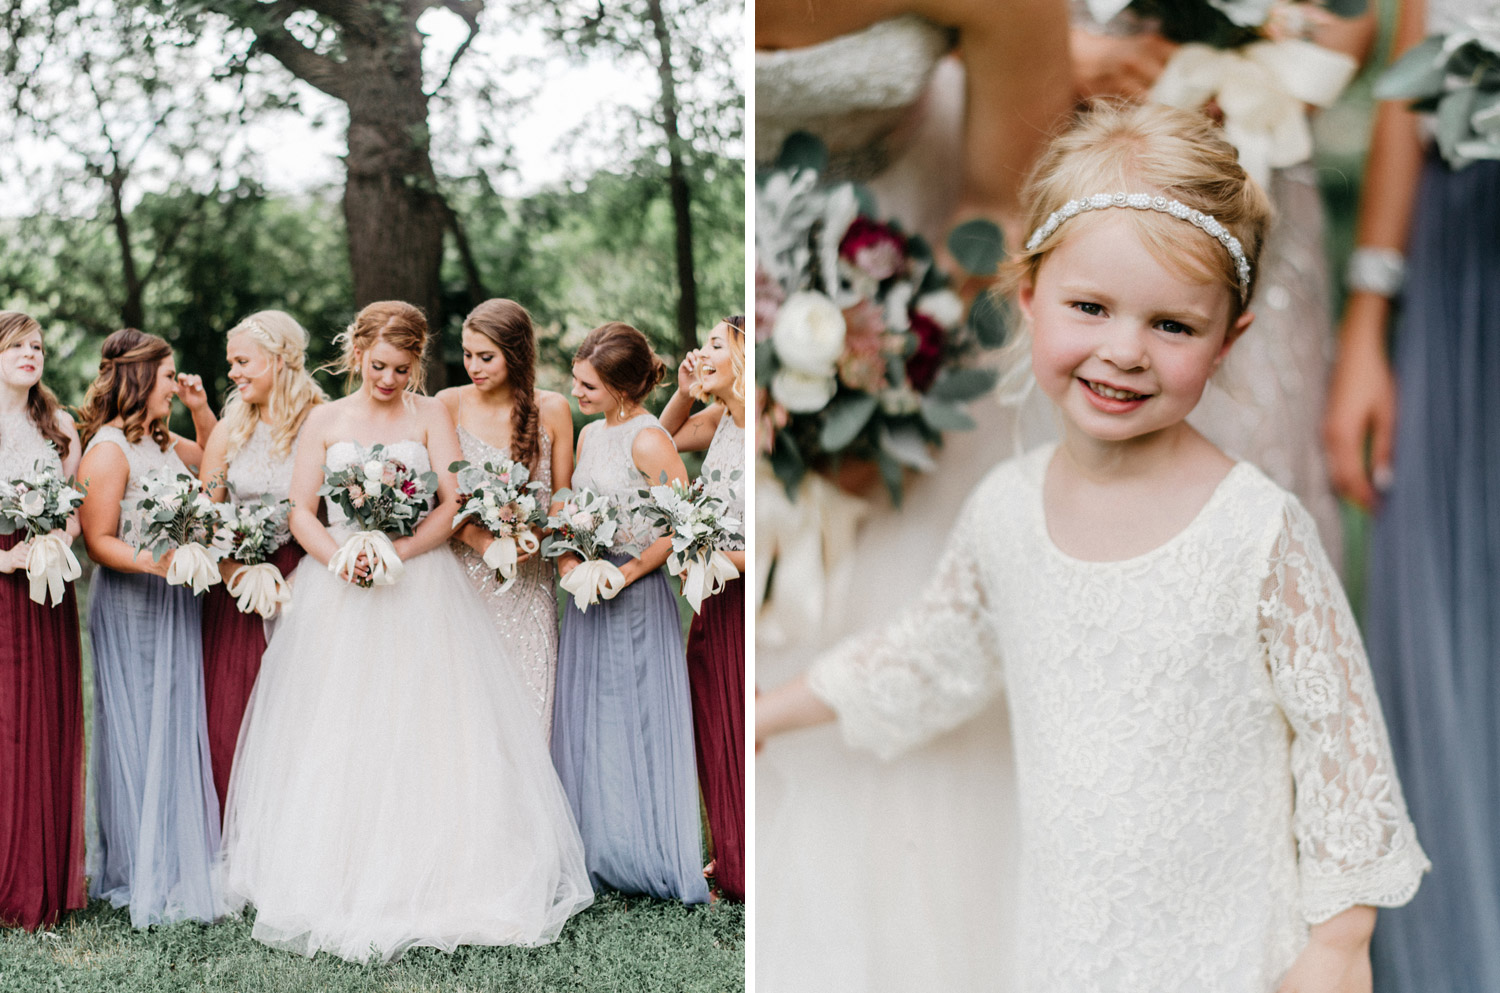 portrait of bridesmaids and flower girl by geneoh photography